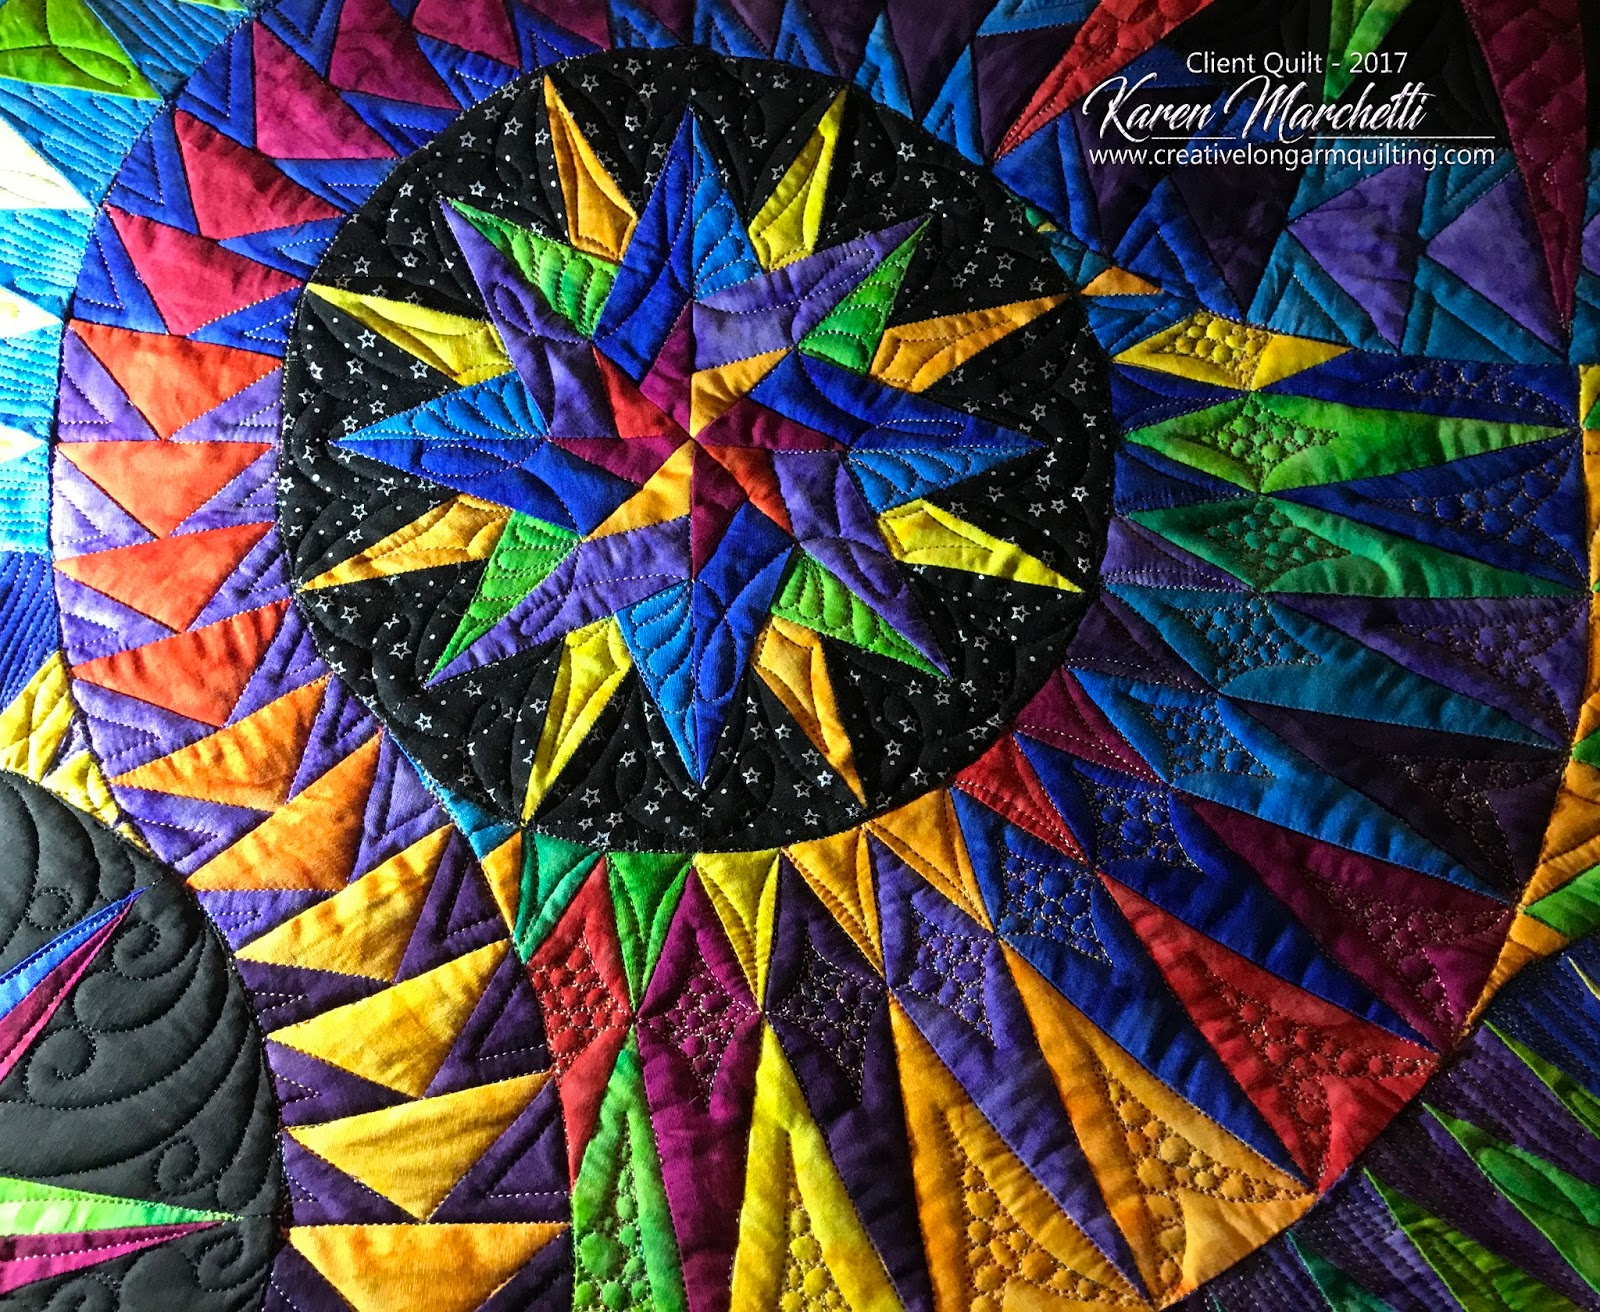 Creative Longarm Quilting by Karen Marchetti: Ruth's Catch Me If ... : catch me if you can quilt - Adamdwight.com